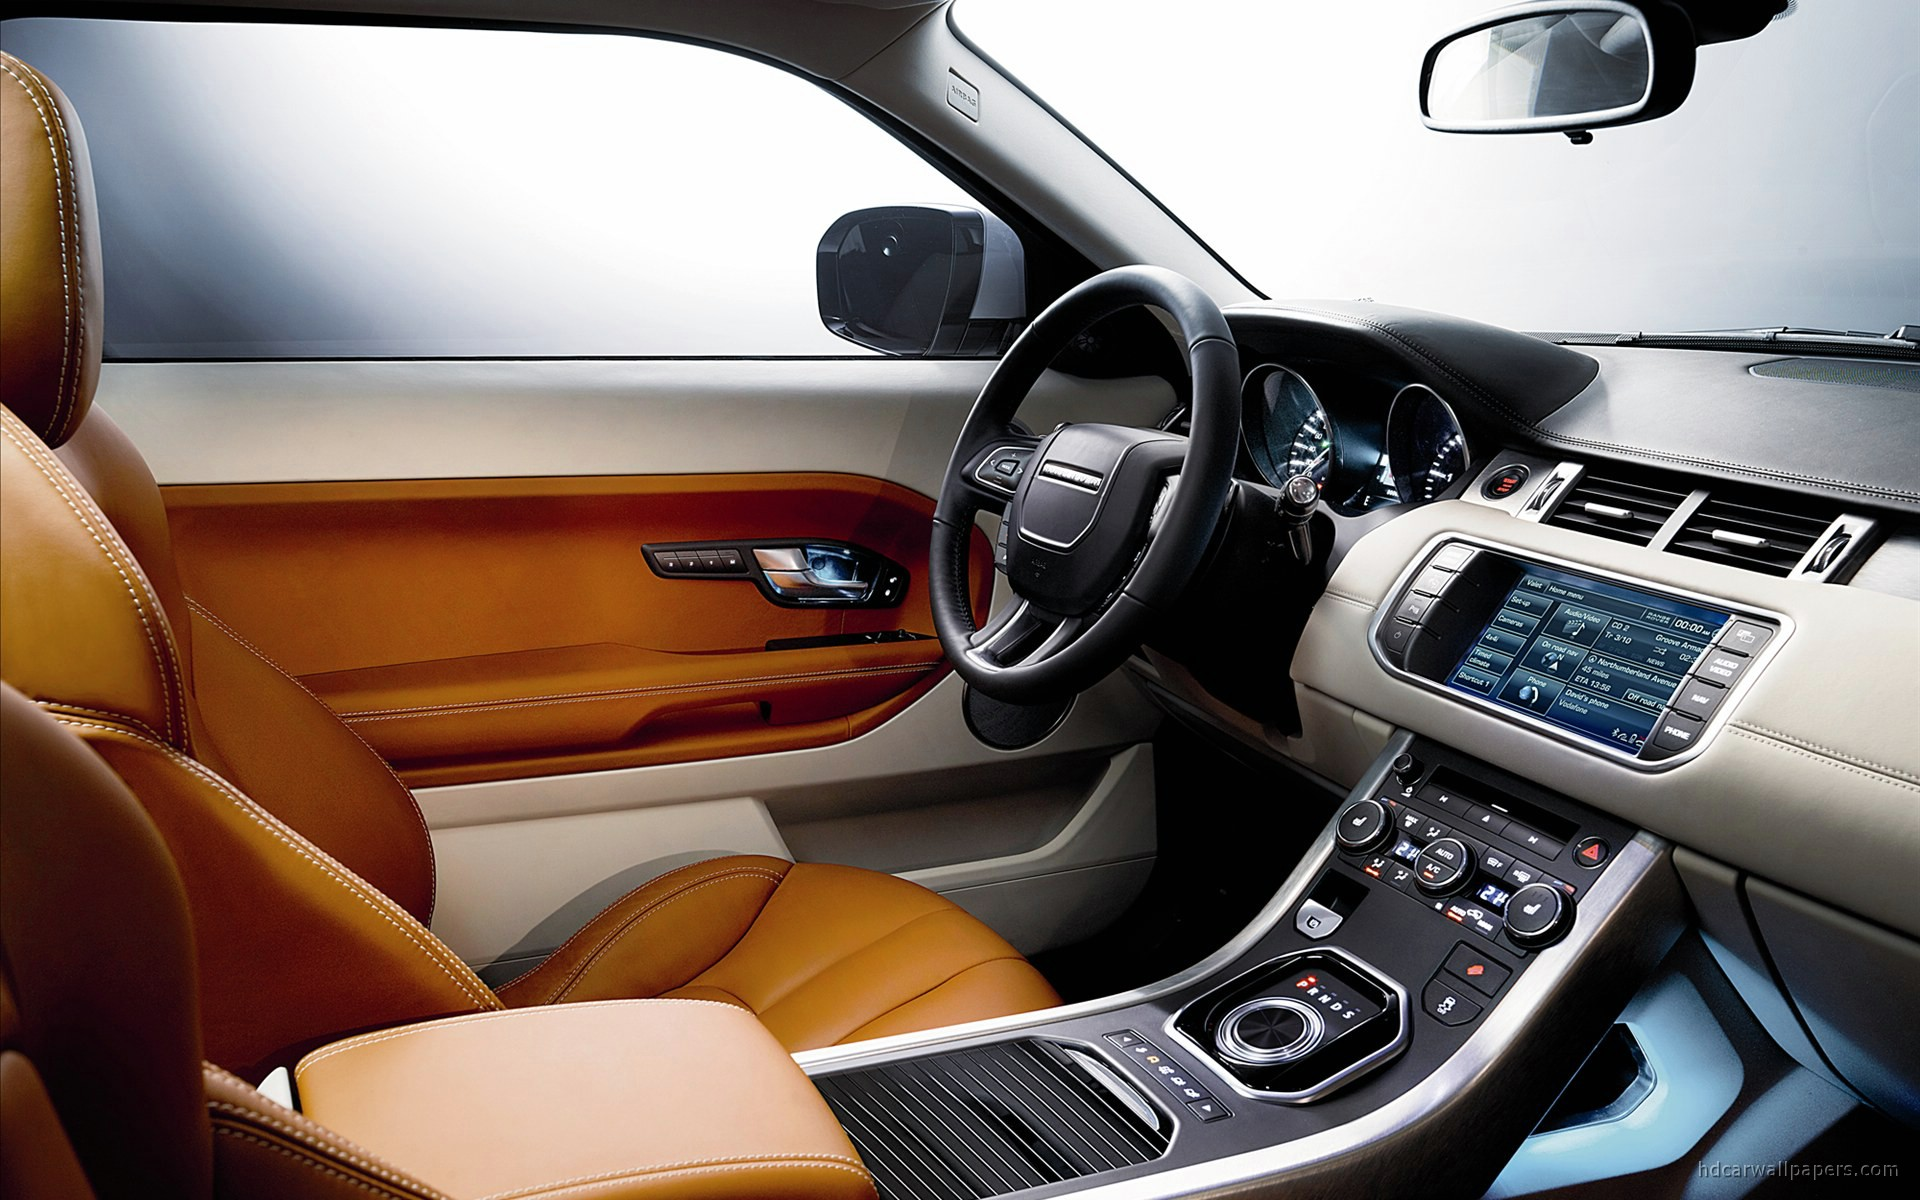 2011 range rover evoque interior wallpaper hd car wallpapers id 1669